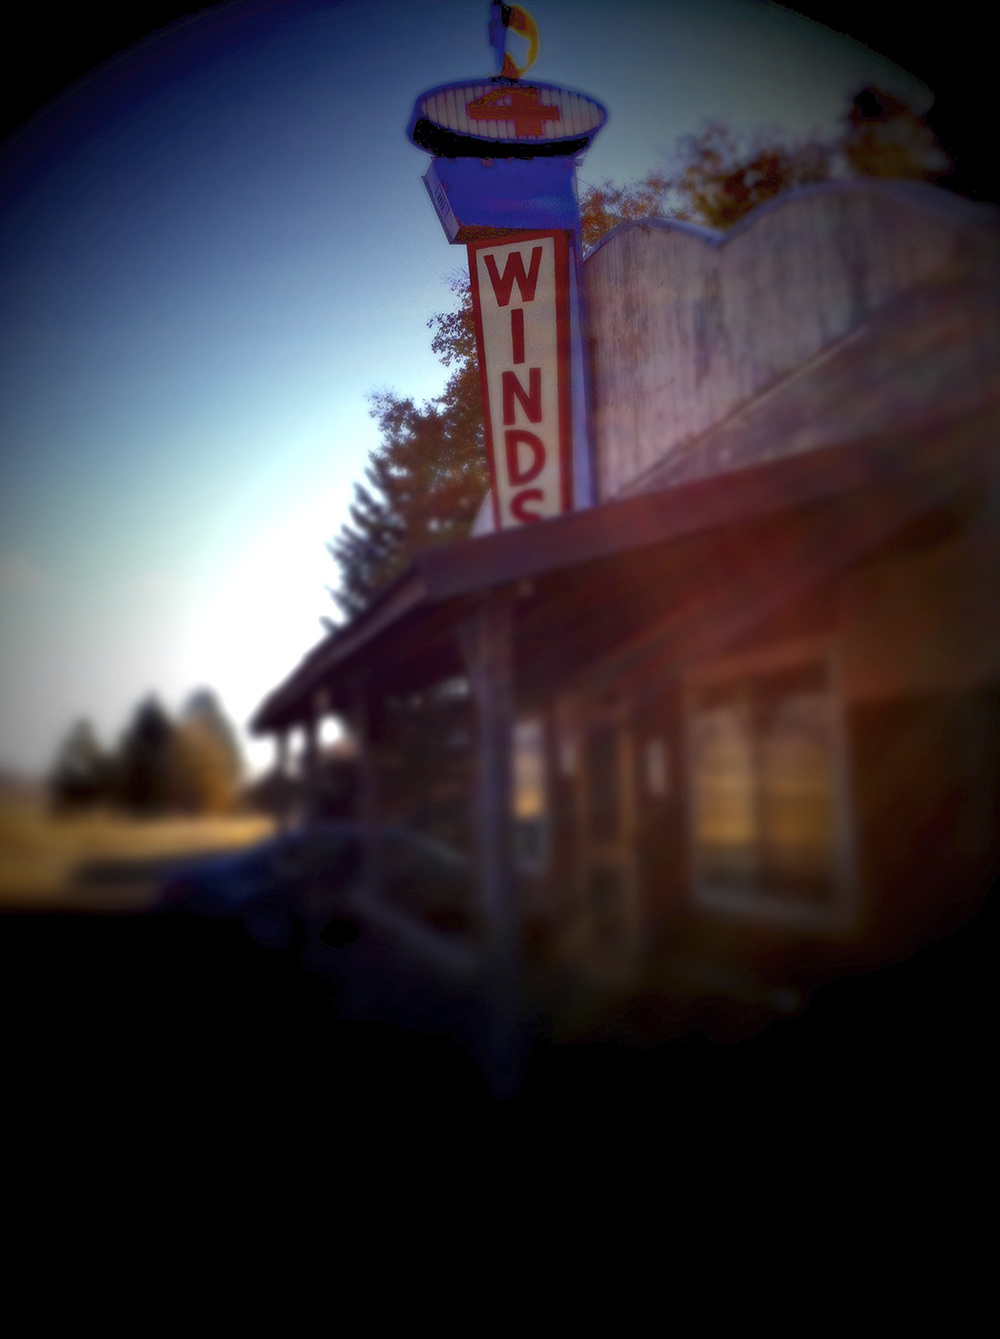 4 Winds Saloon